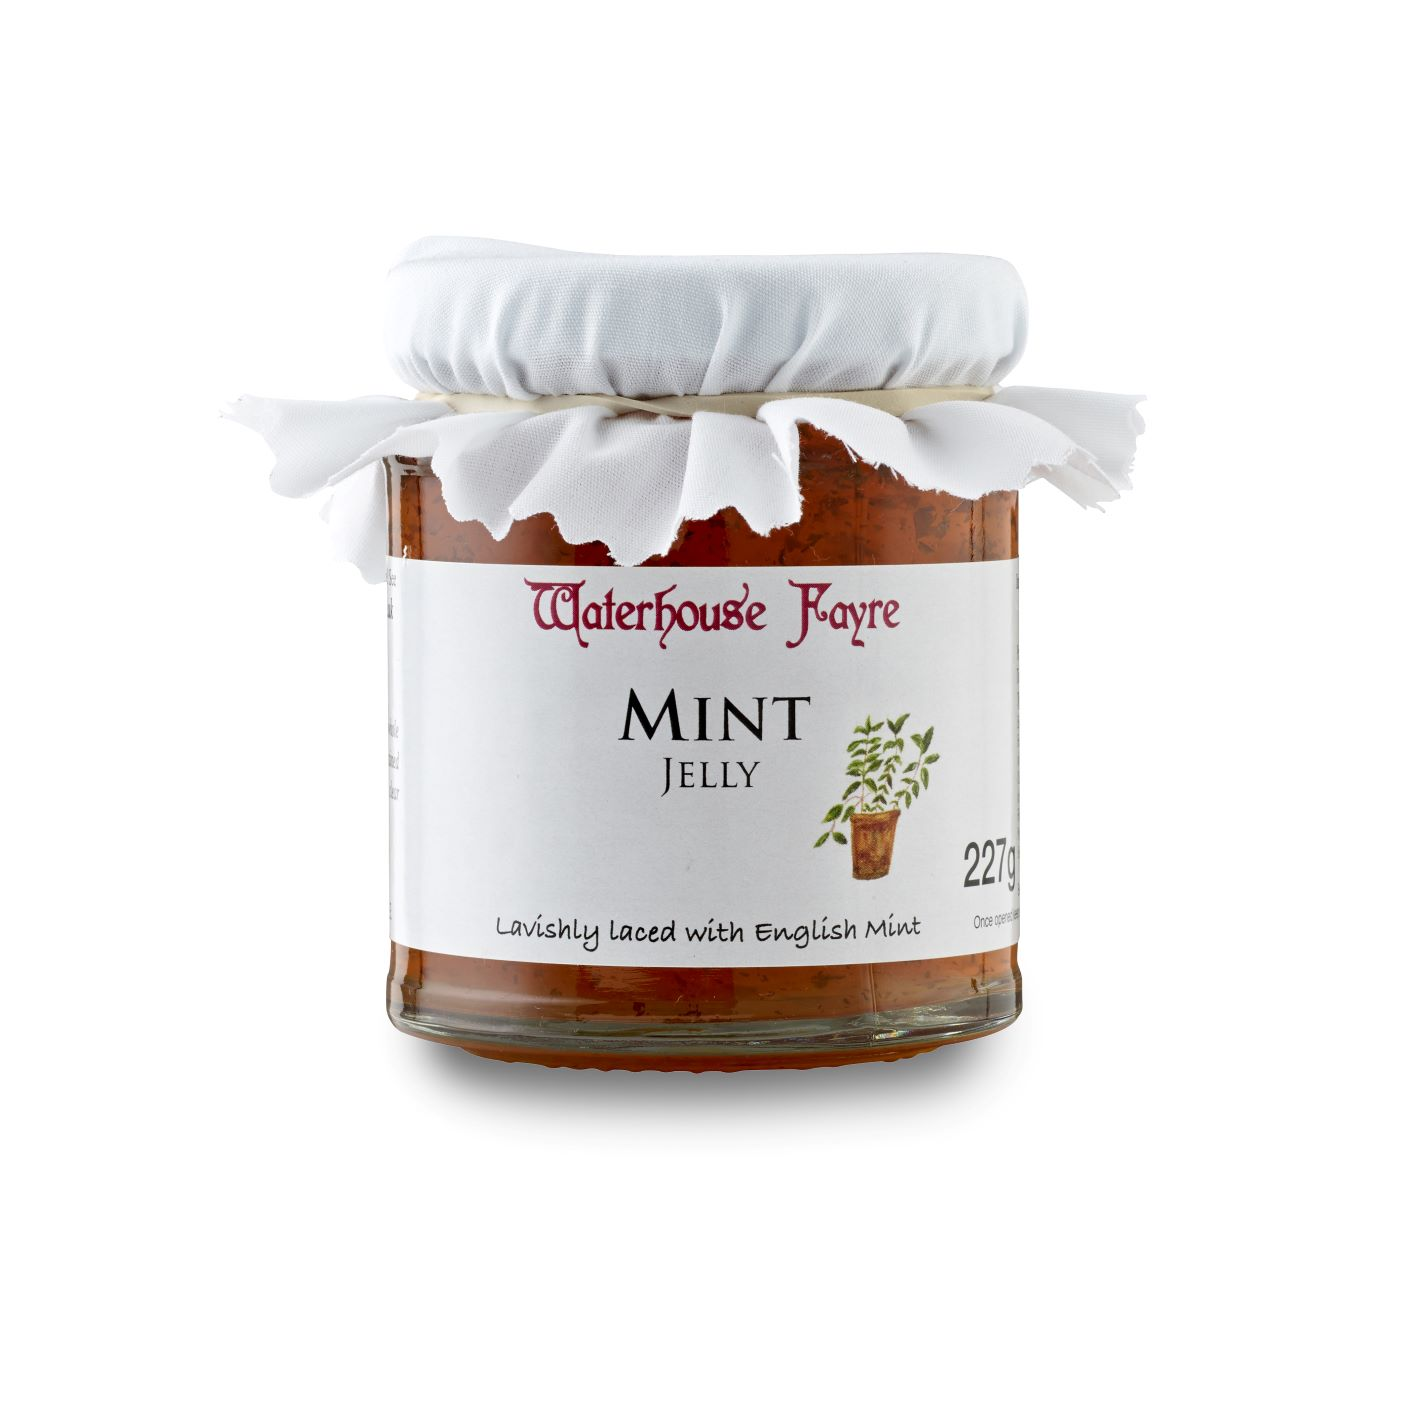 Waterhouse Fayre Mint Jelly (227g)